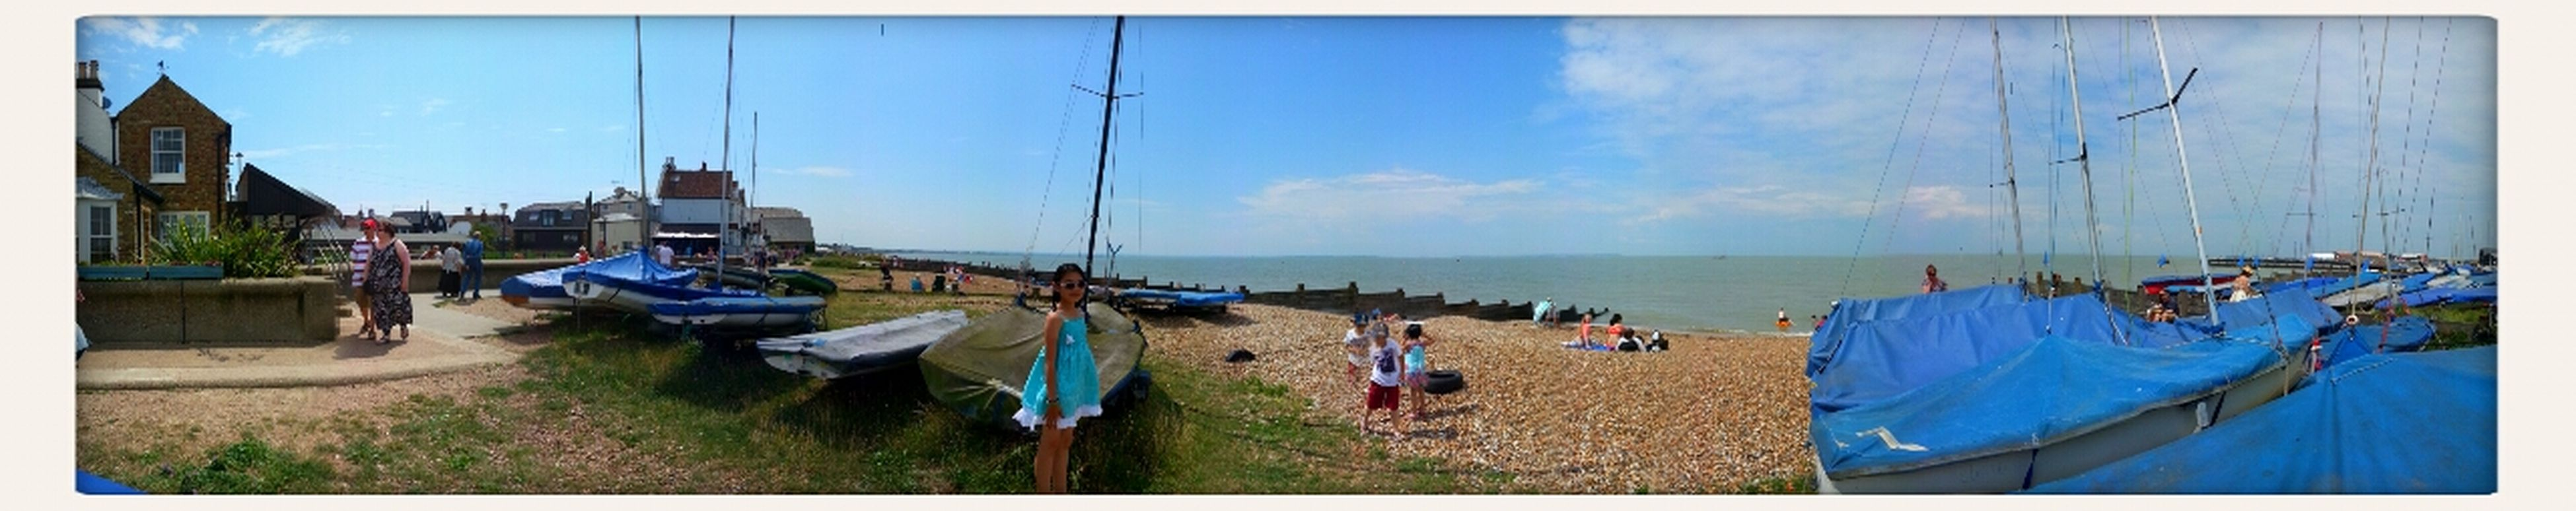 Whitstable Kent Oyster Fest 2014 Fun In The Sun ☀